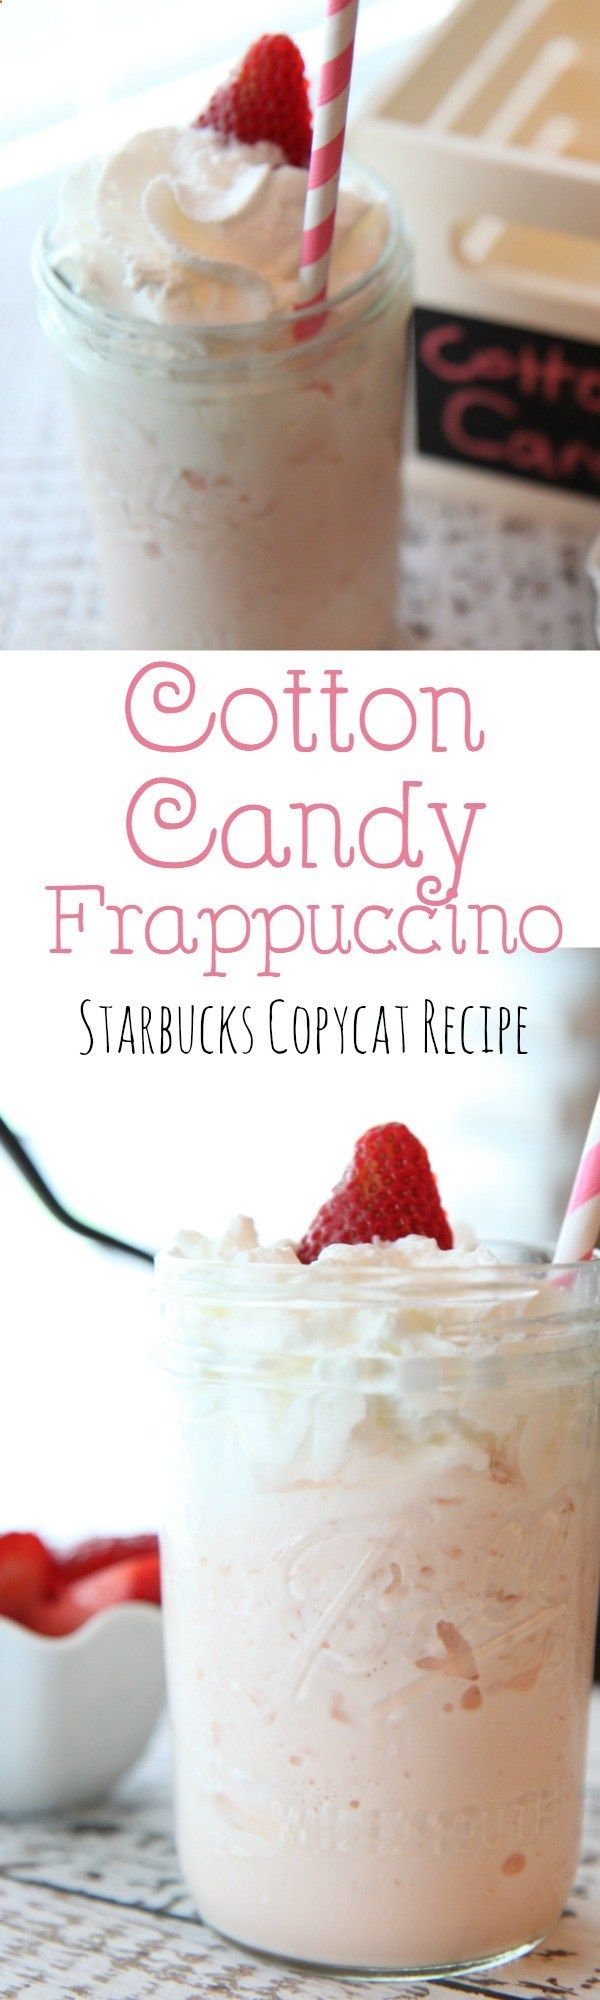 The Cotton Candy Frappuccino from the secret Starbucks menu is easy to make at home. It is just as delicious at a fraction of the price.